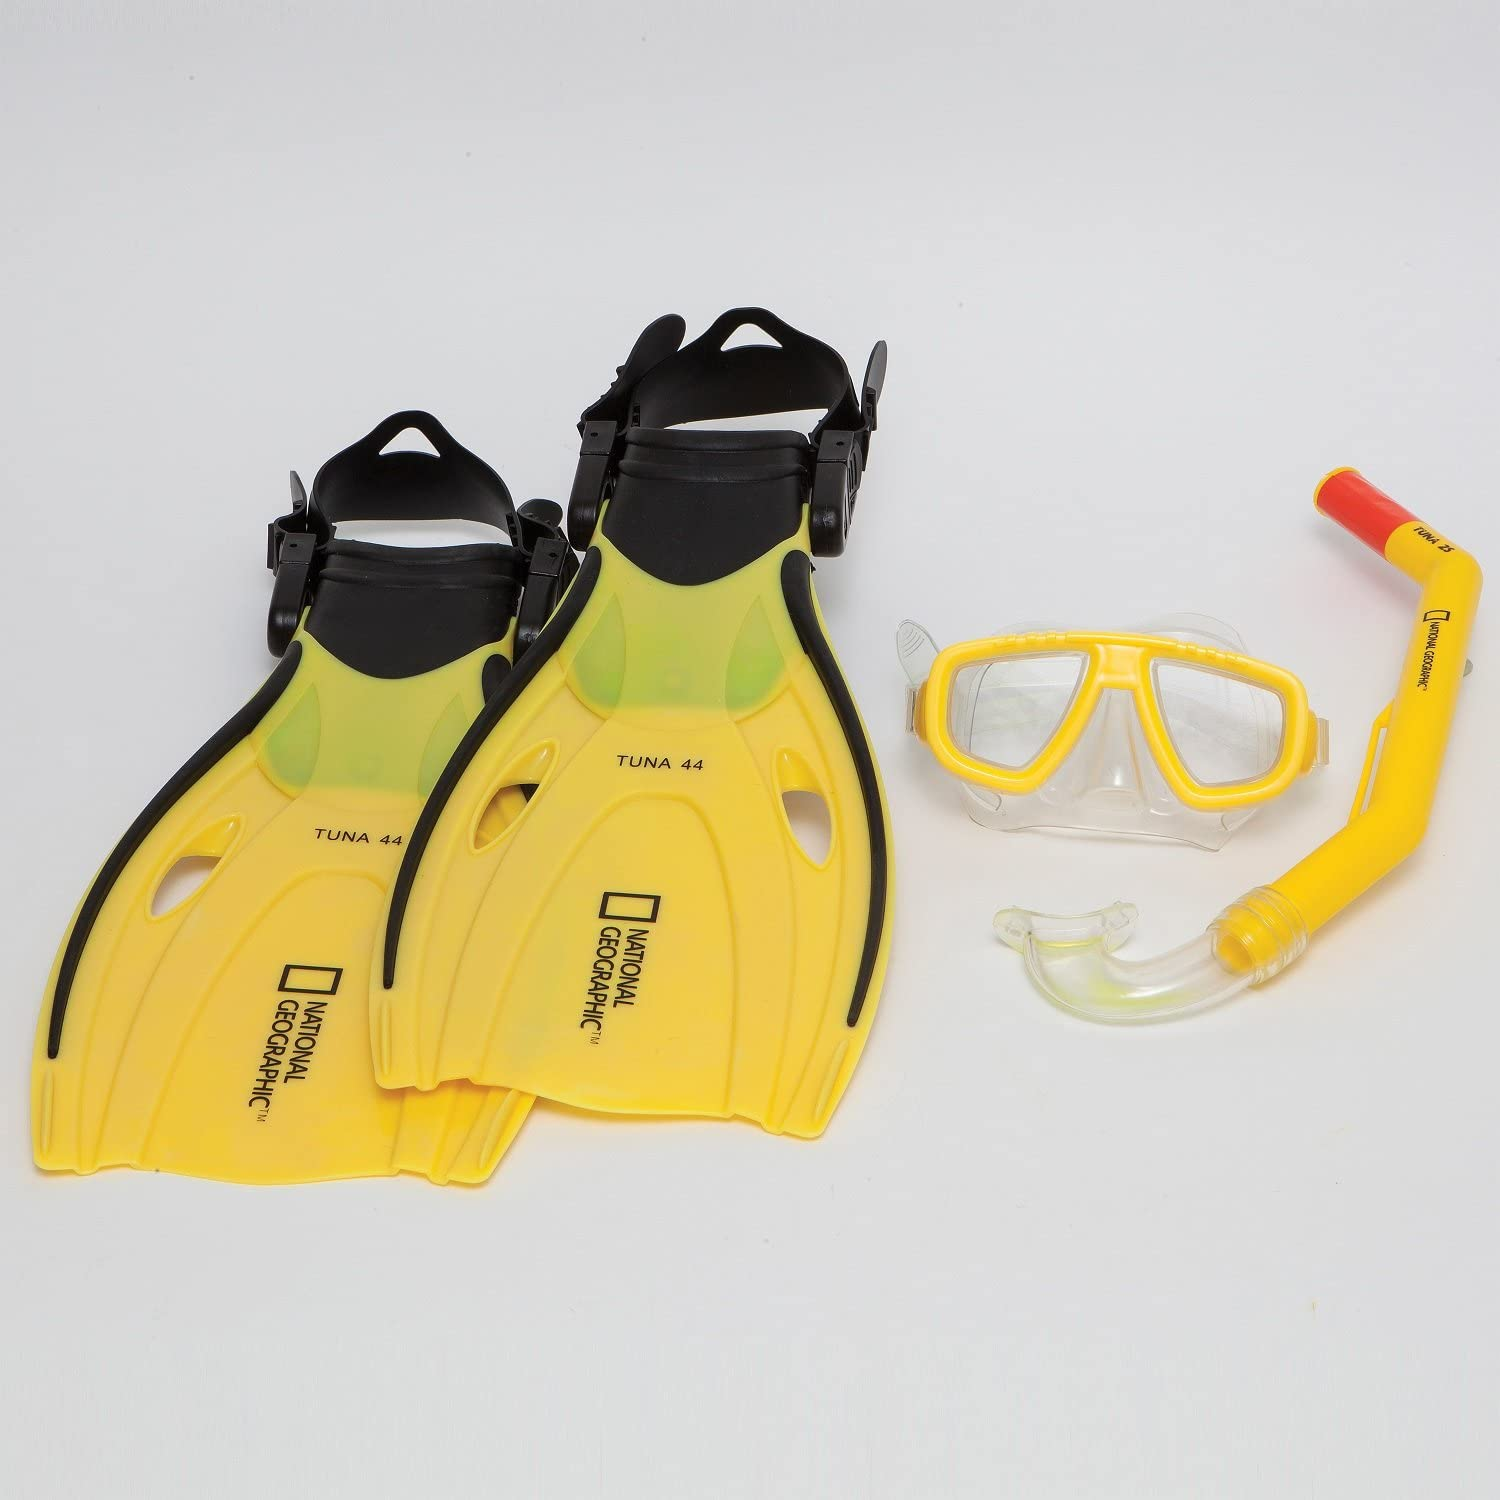 National Geographic Snorkler Experience 3 Piece Set with Tuna 2S Mask, Wahoo SemiDri Snorkel and Tuna 44 Adjustable Fins